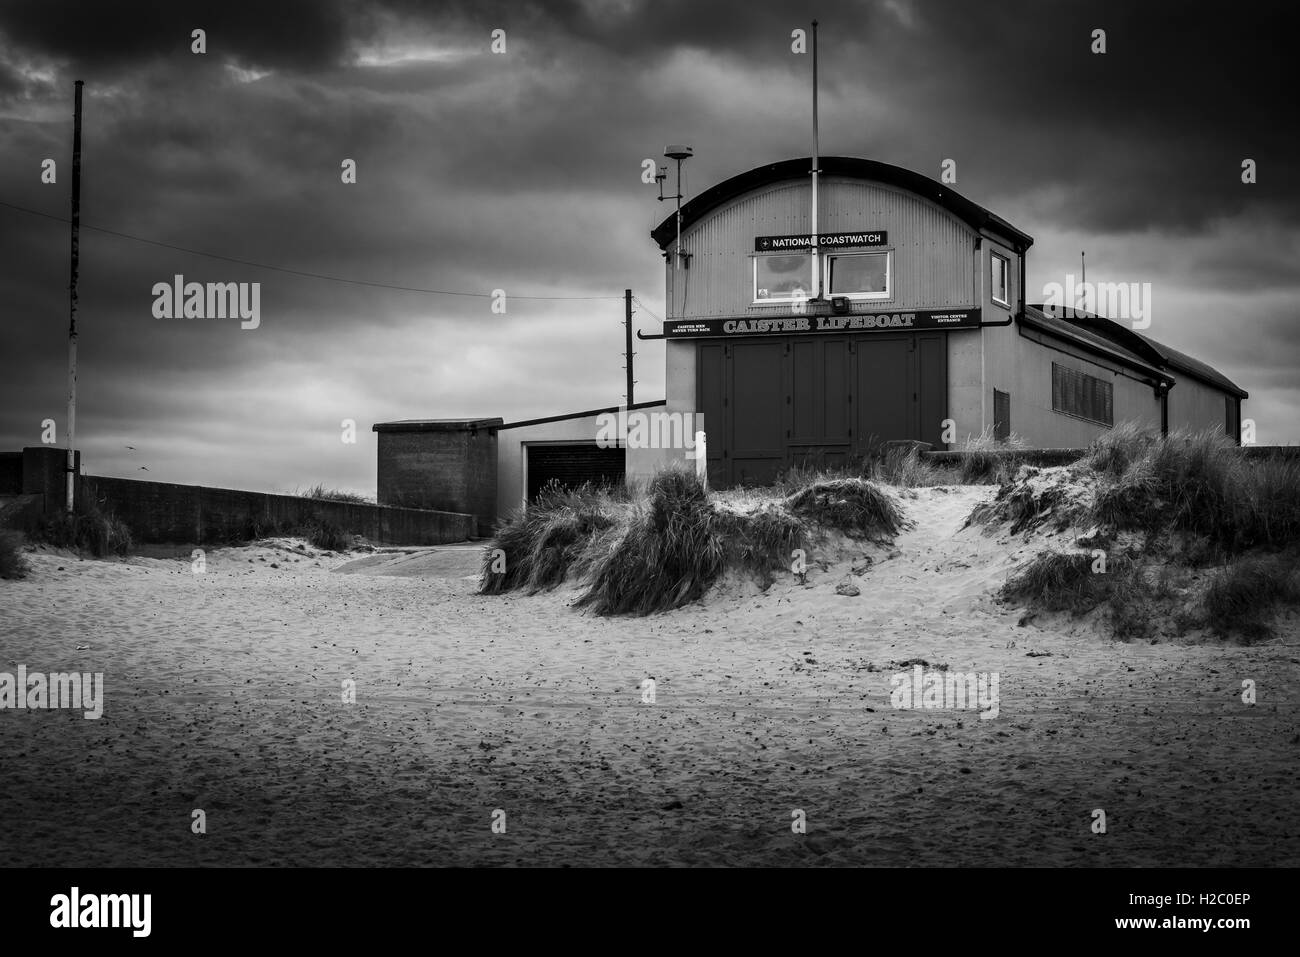 Black and white image if Lifeboat Station, Caistor-on-sea, Norfolk, England - Stock Image